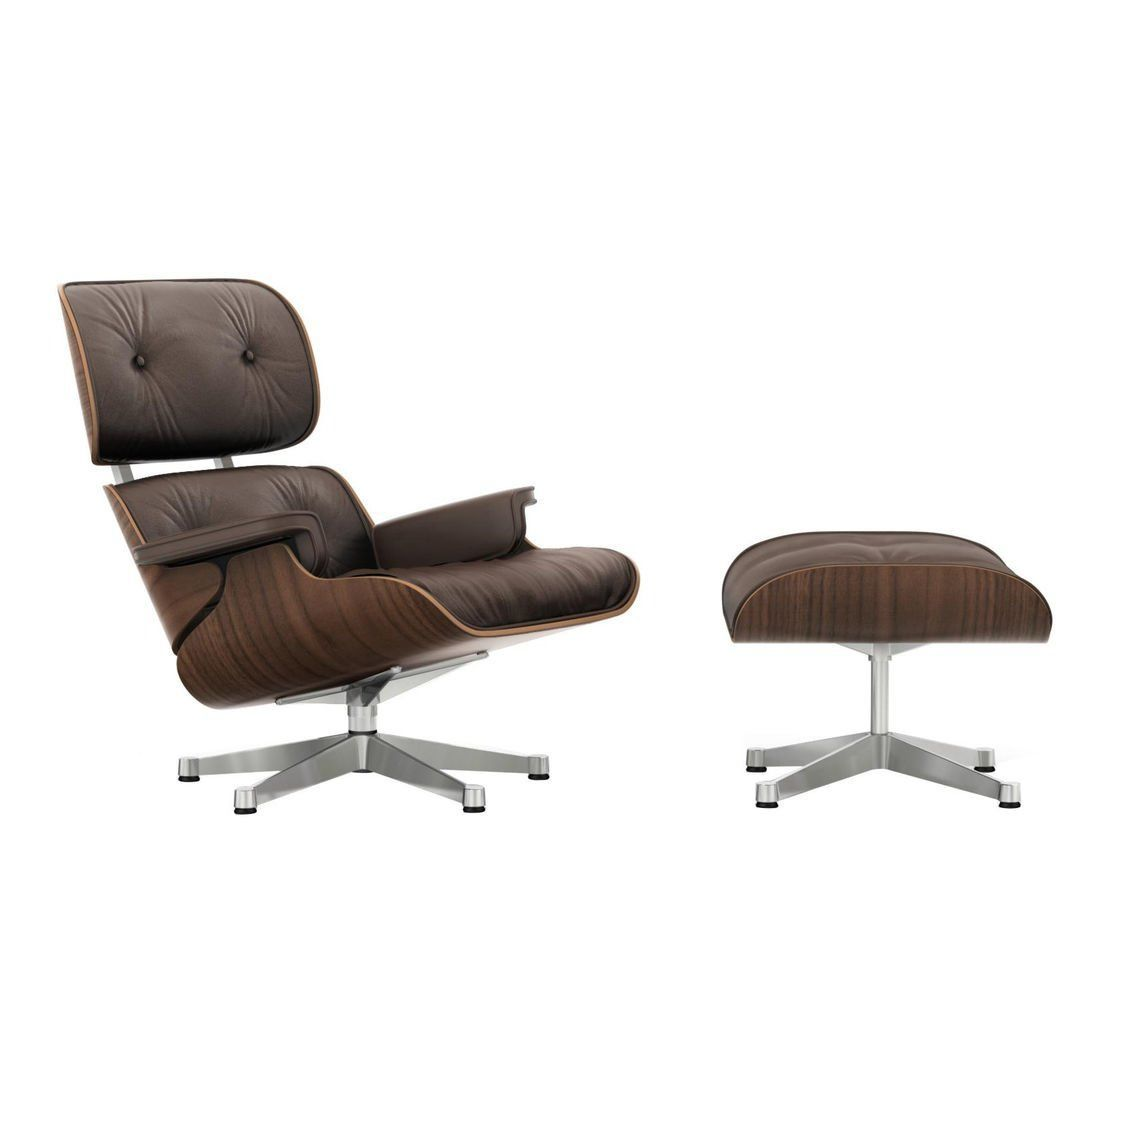 ... Eames Lounge Chair Sessel Ottoman Vitra ...